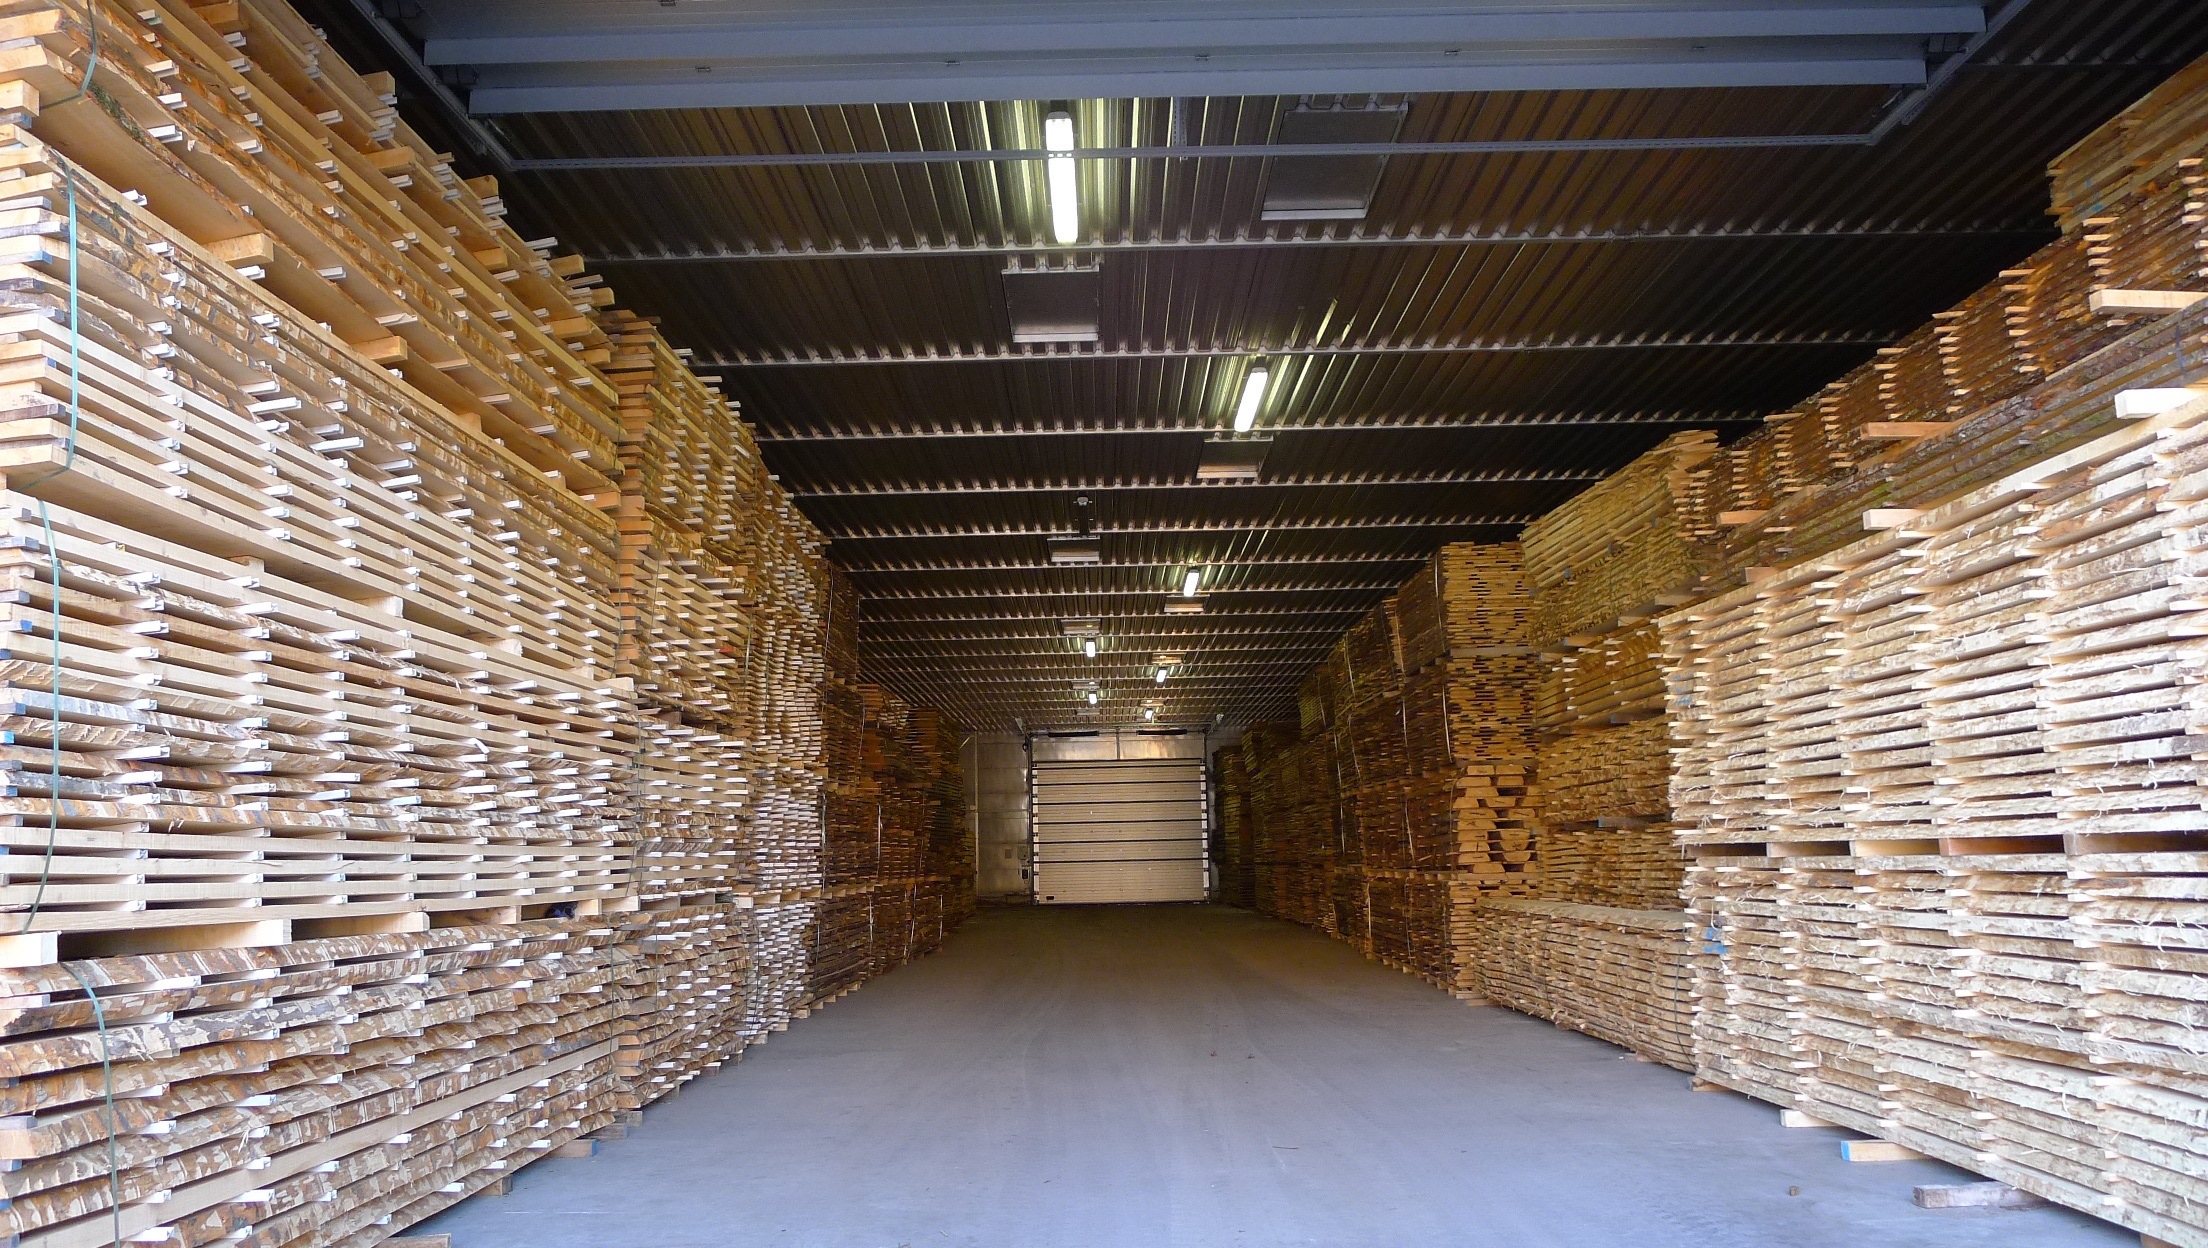 France: oak prices soar in early 2017